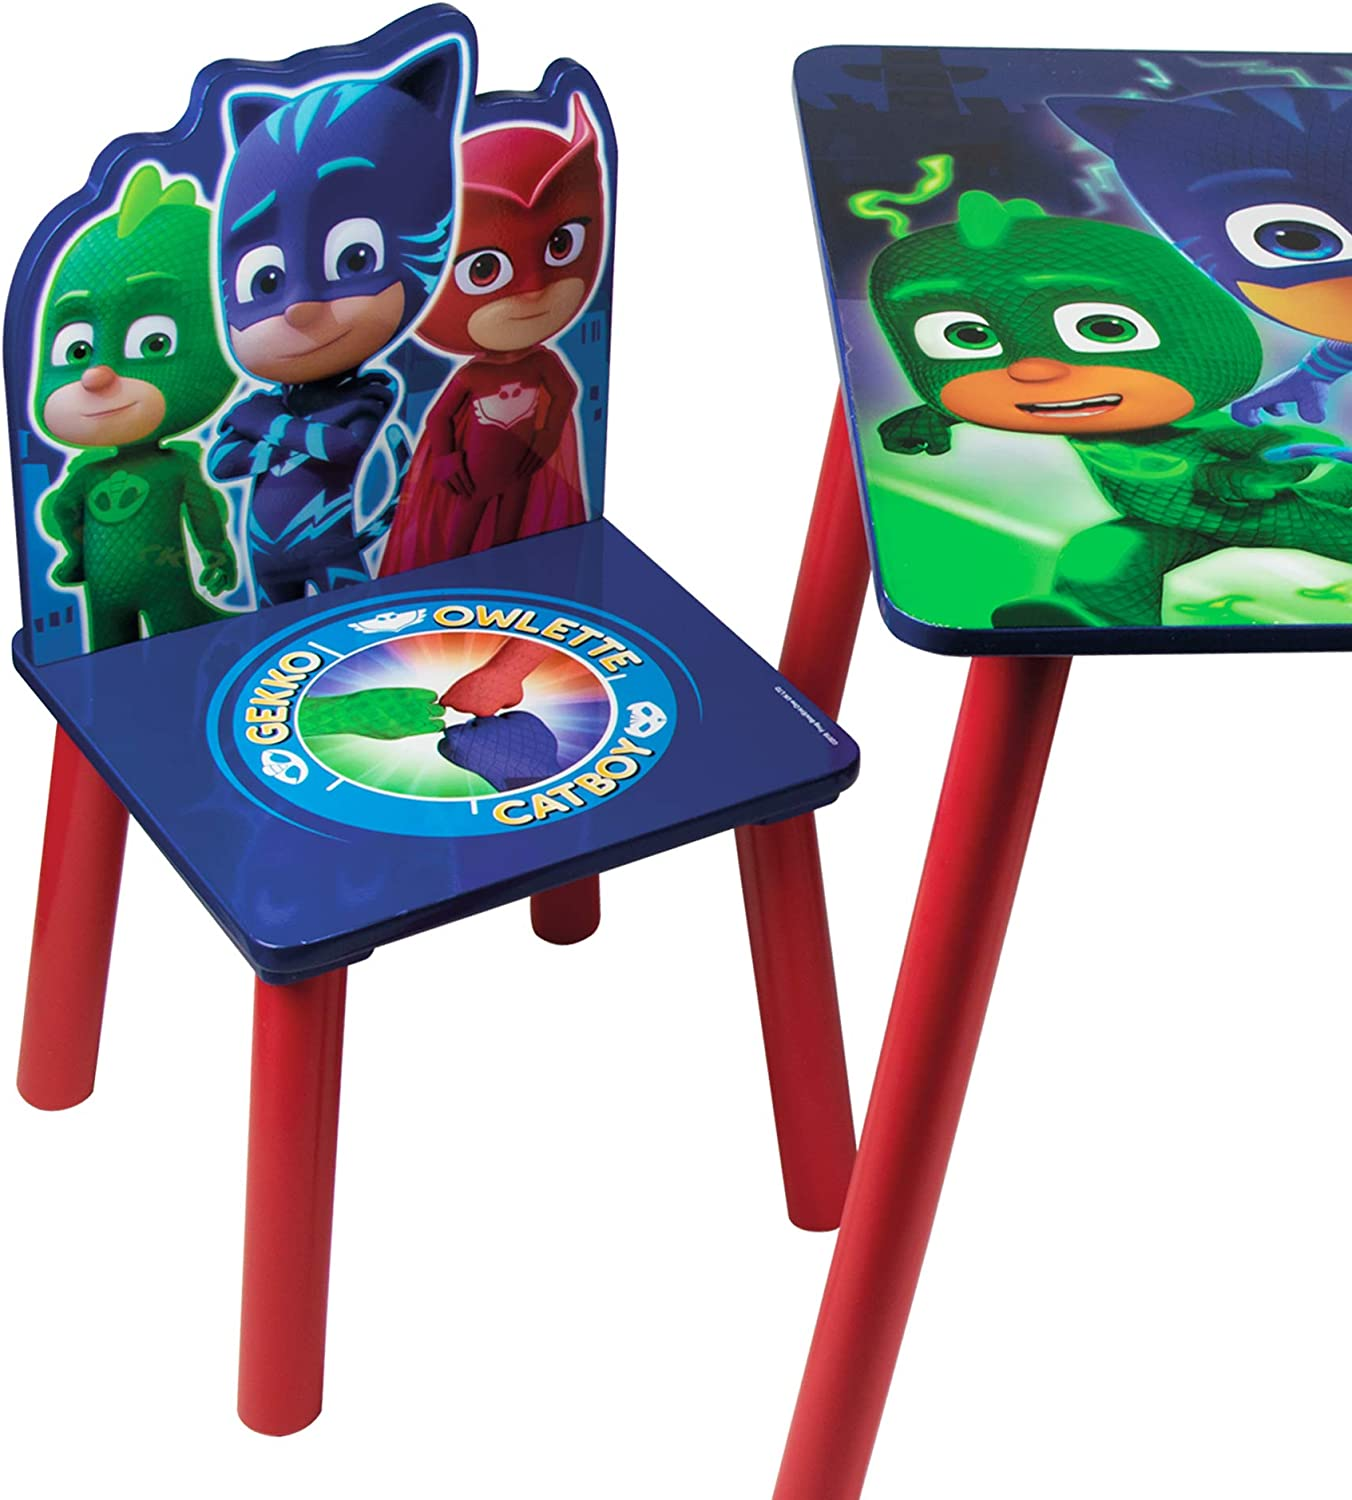 Themed Wooden Kids Table /& Chairs Set